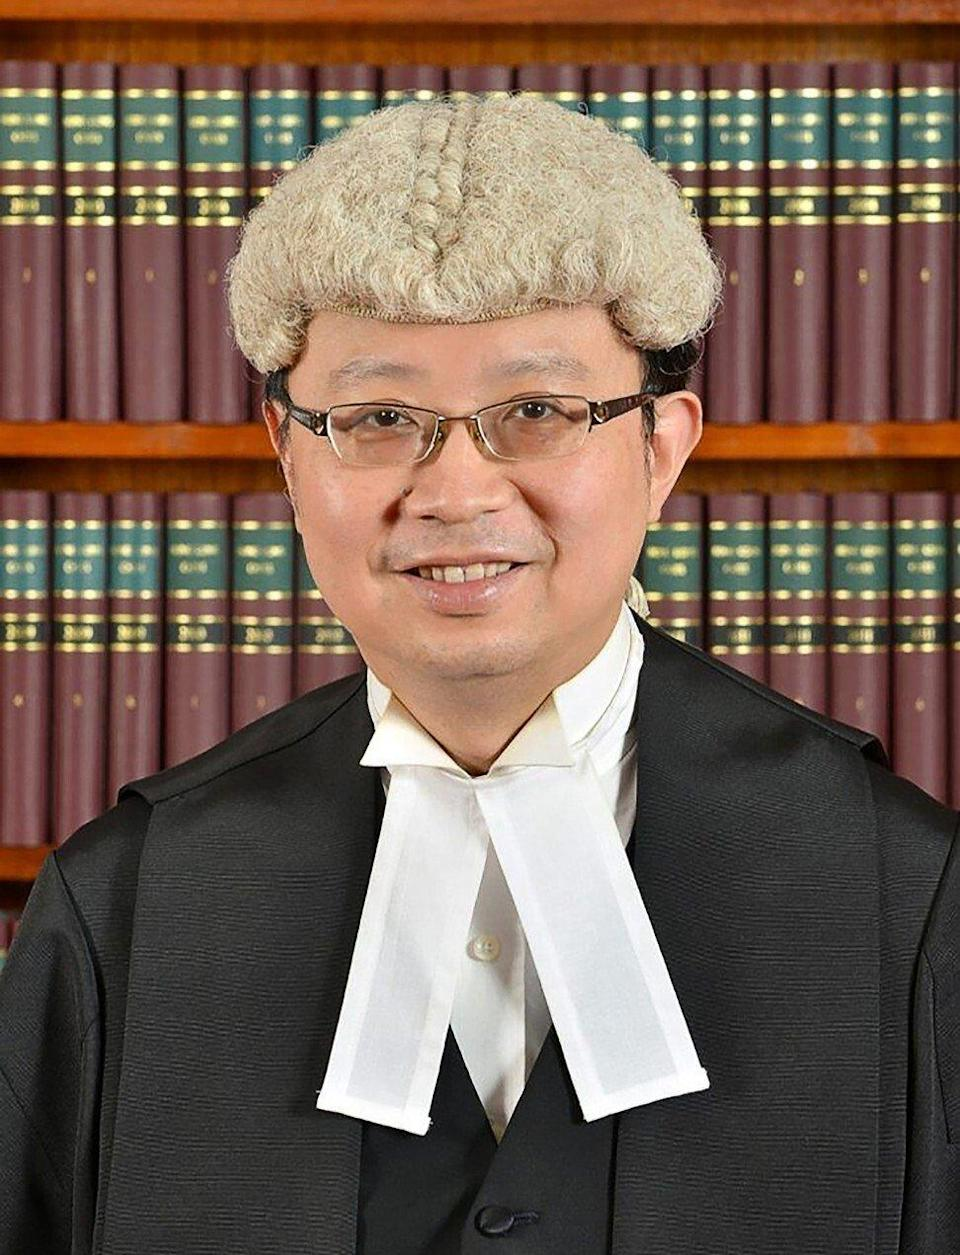 Johnson Lam is to become a permanent member of the Court of Final Appeal. Photo: Handout